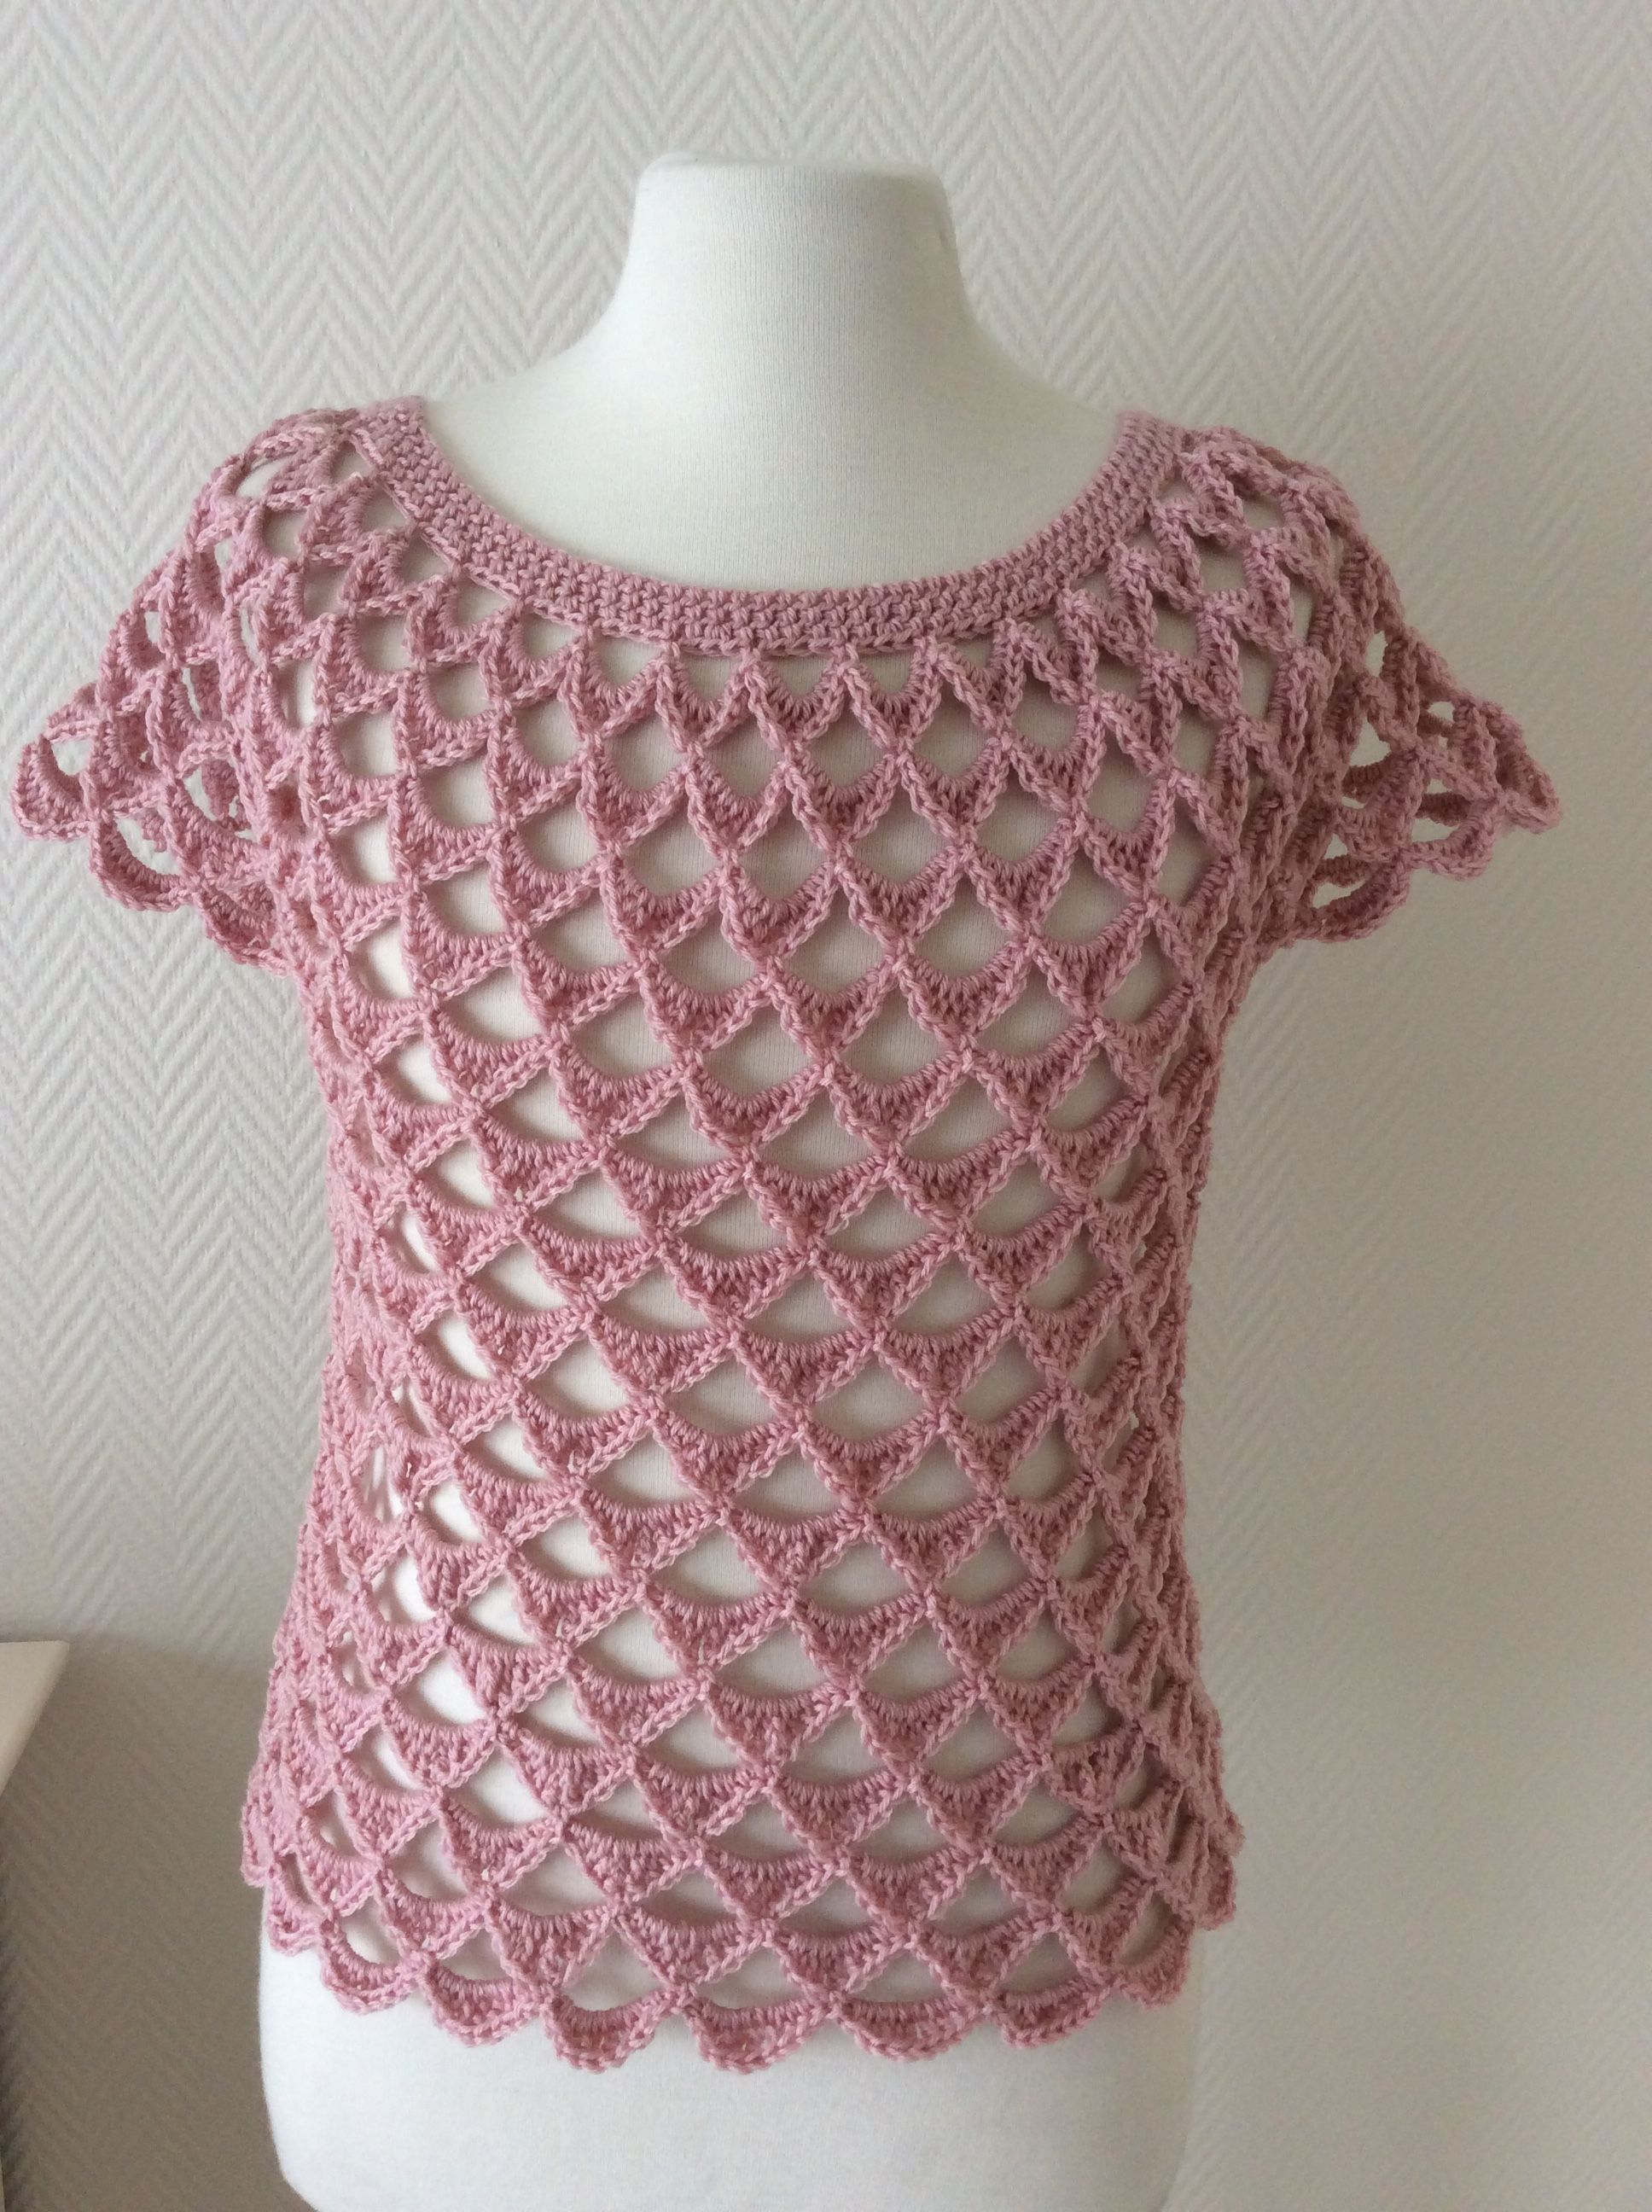 Pin By Monicas Creations Sb On Crochet Pinterest All Shawl Stitch Diagrams Doris Chan Patterns And Knitting